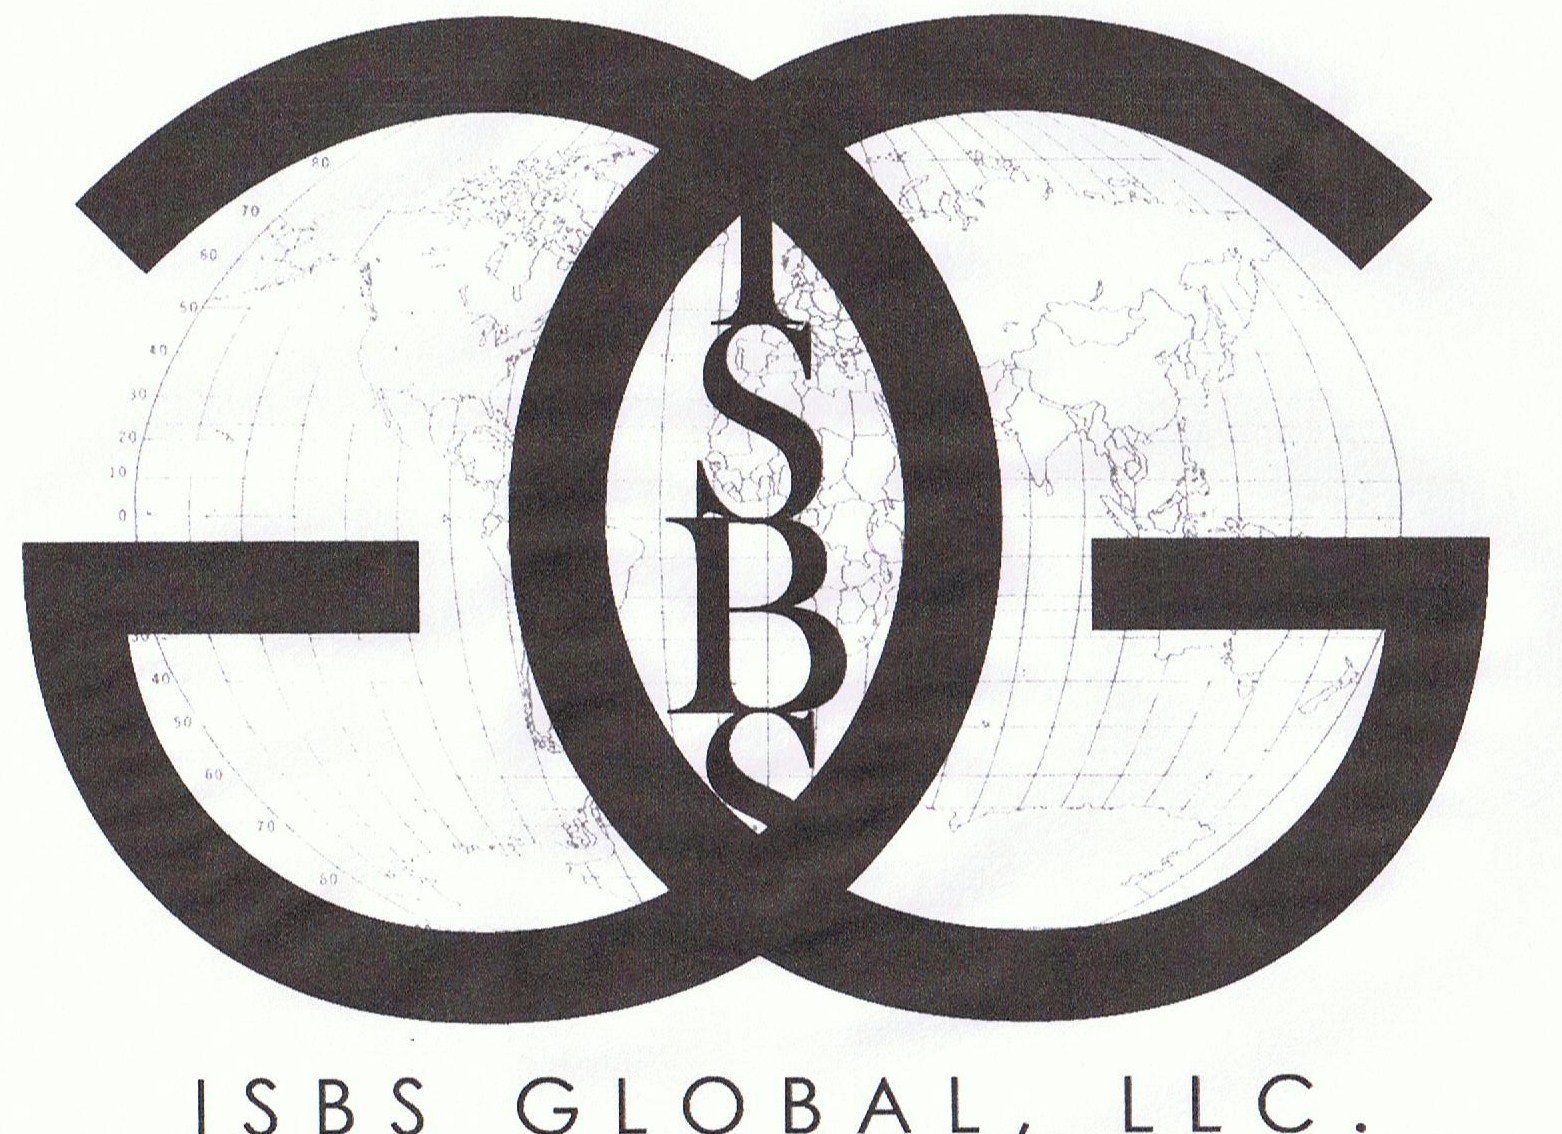 Gg isbs isbs global llc details a report by trademark bank thank you for using trademark bank to search for the gg isbs isbs global llc this mark was filed by isbs global llc on 08152008 for goods and services buycottarizona Gallery